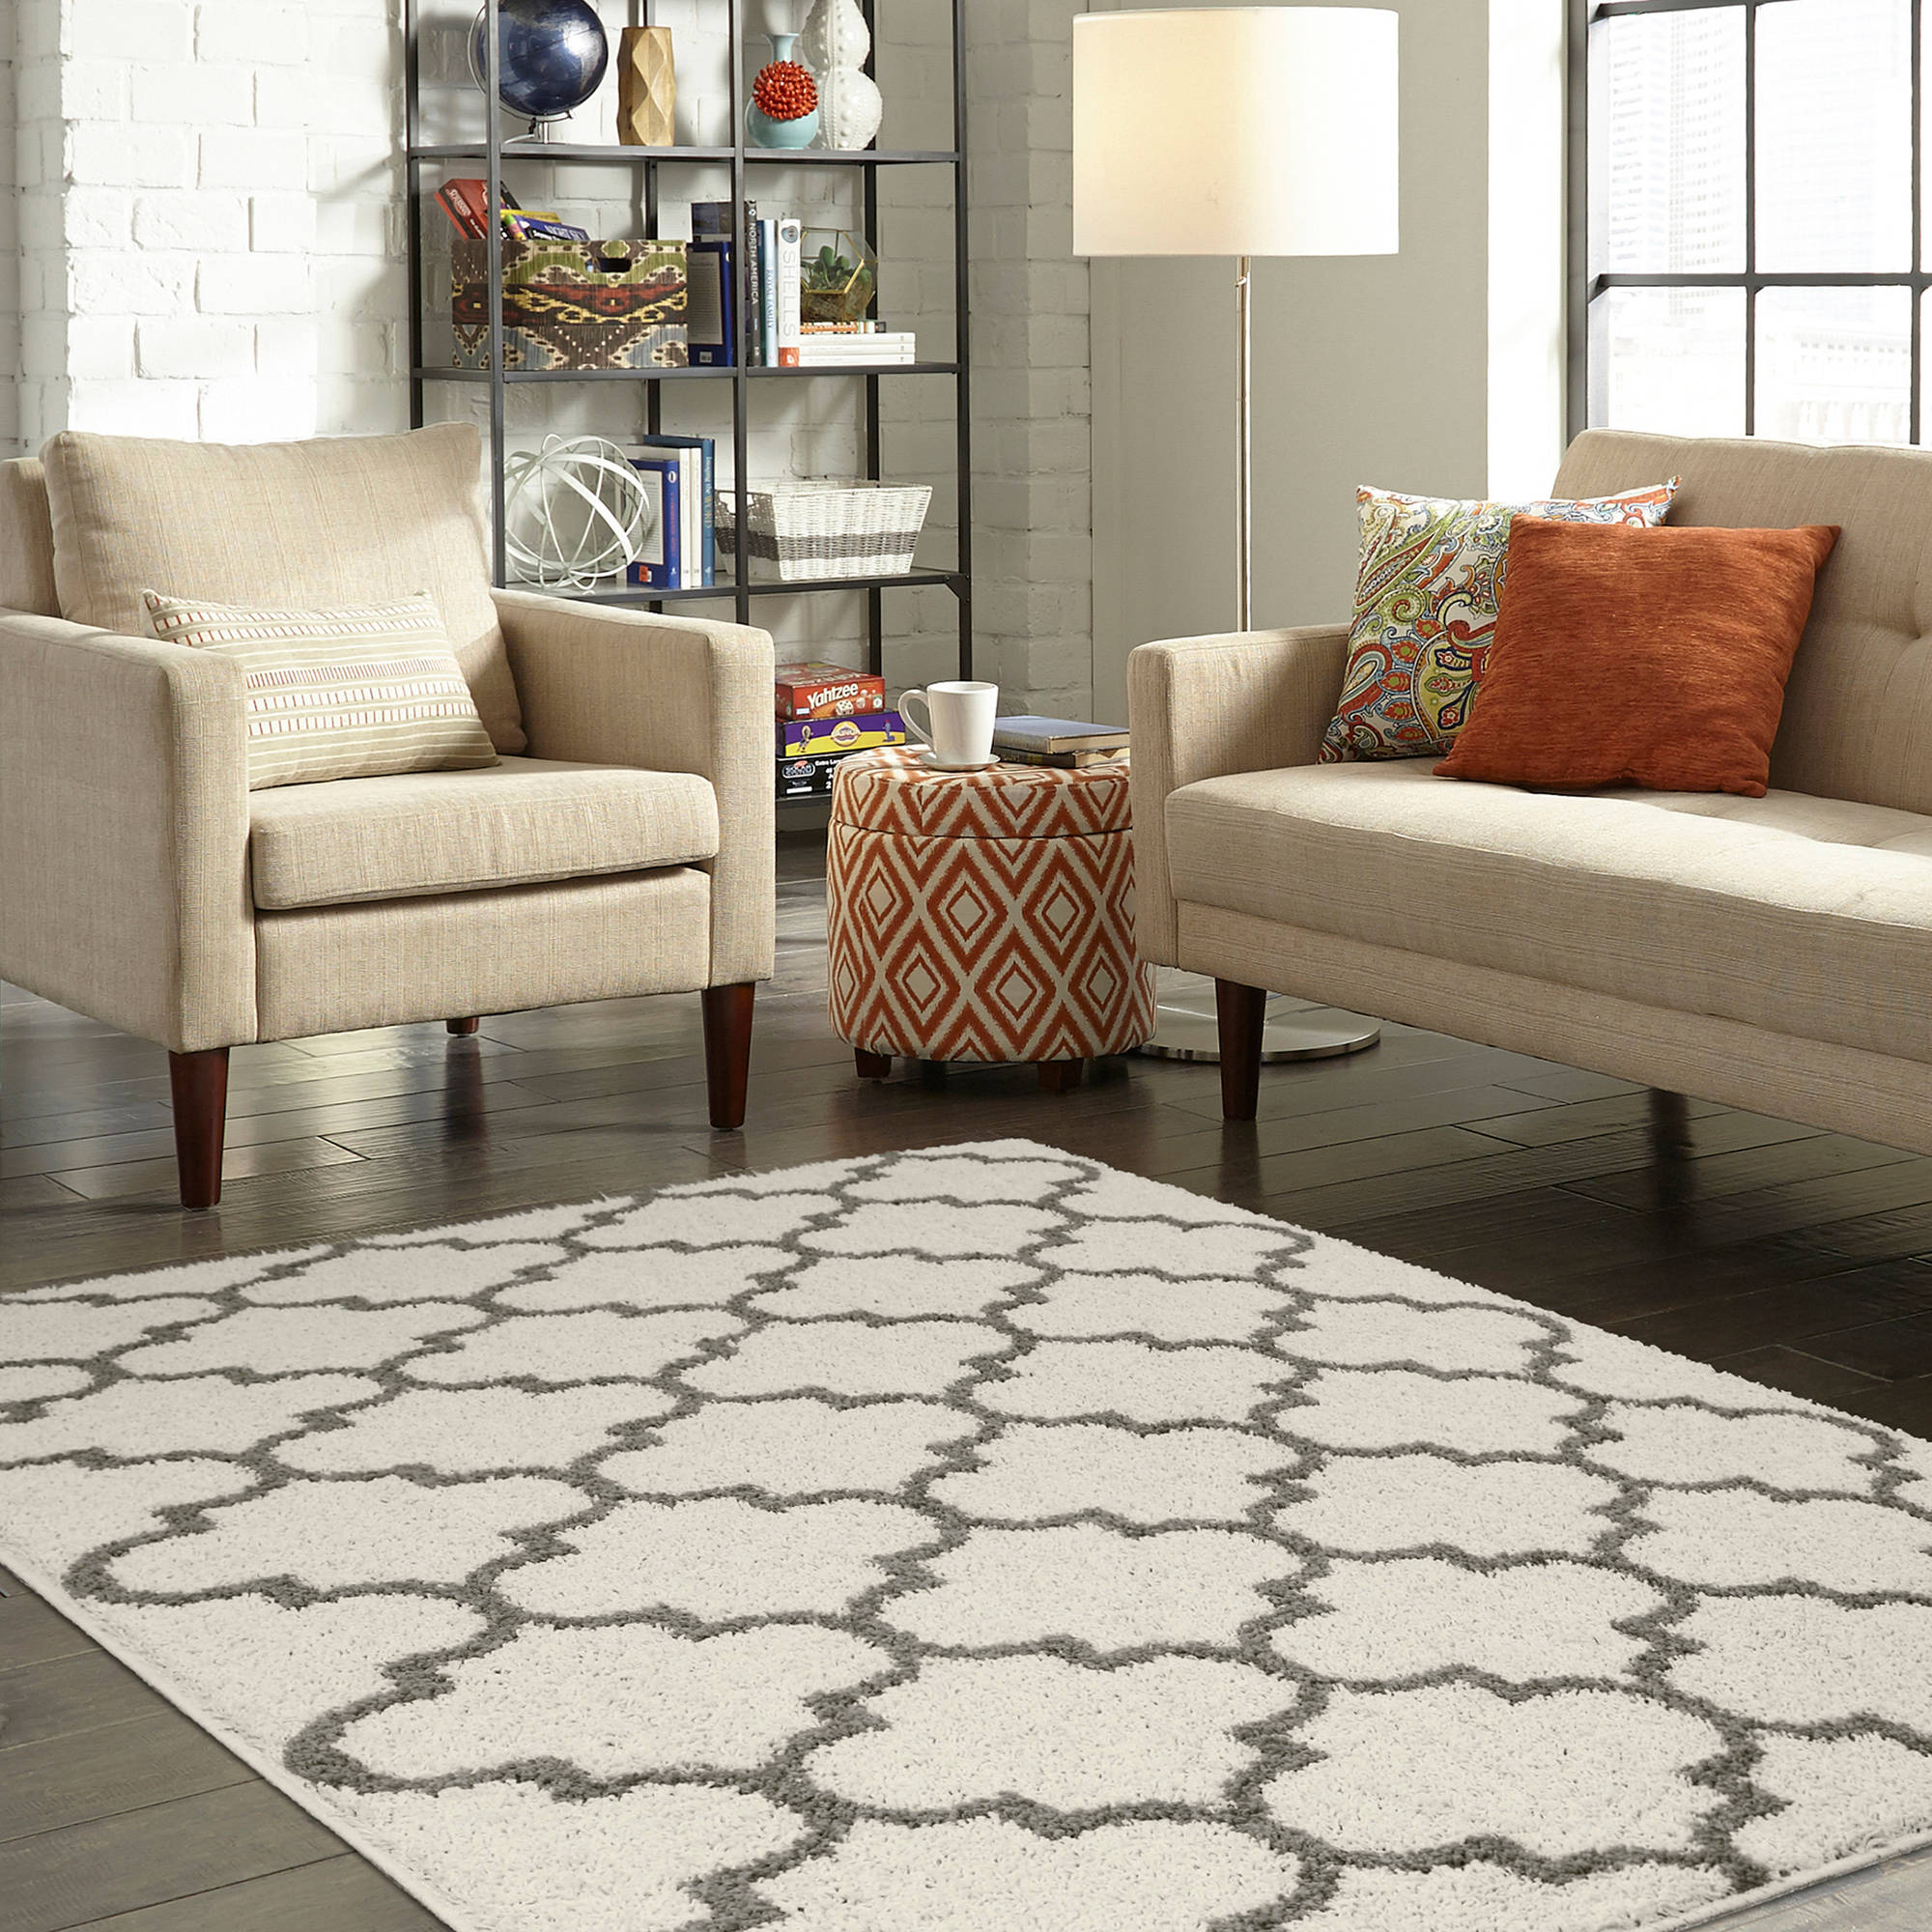 Mainstays Trellis 2-Color Shag Area Rugs or Runner